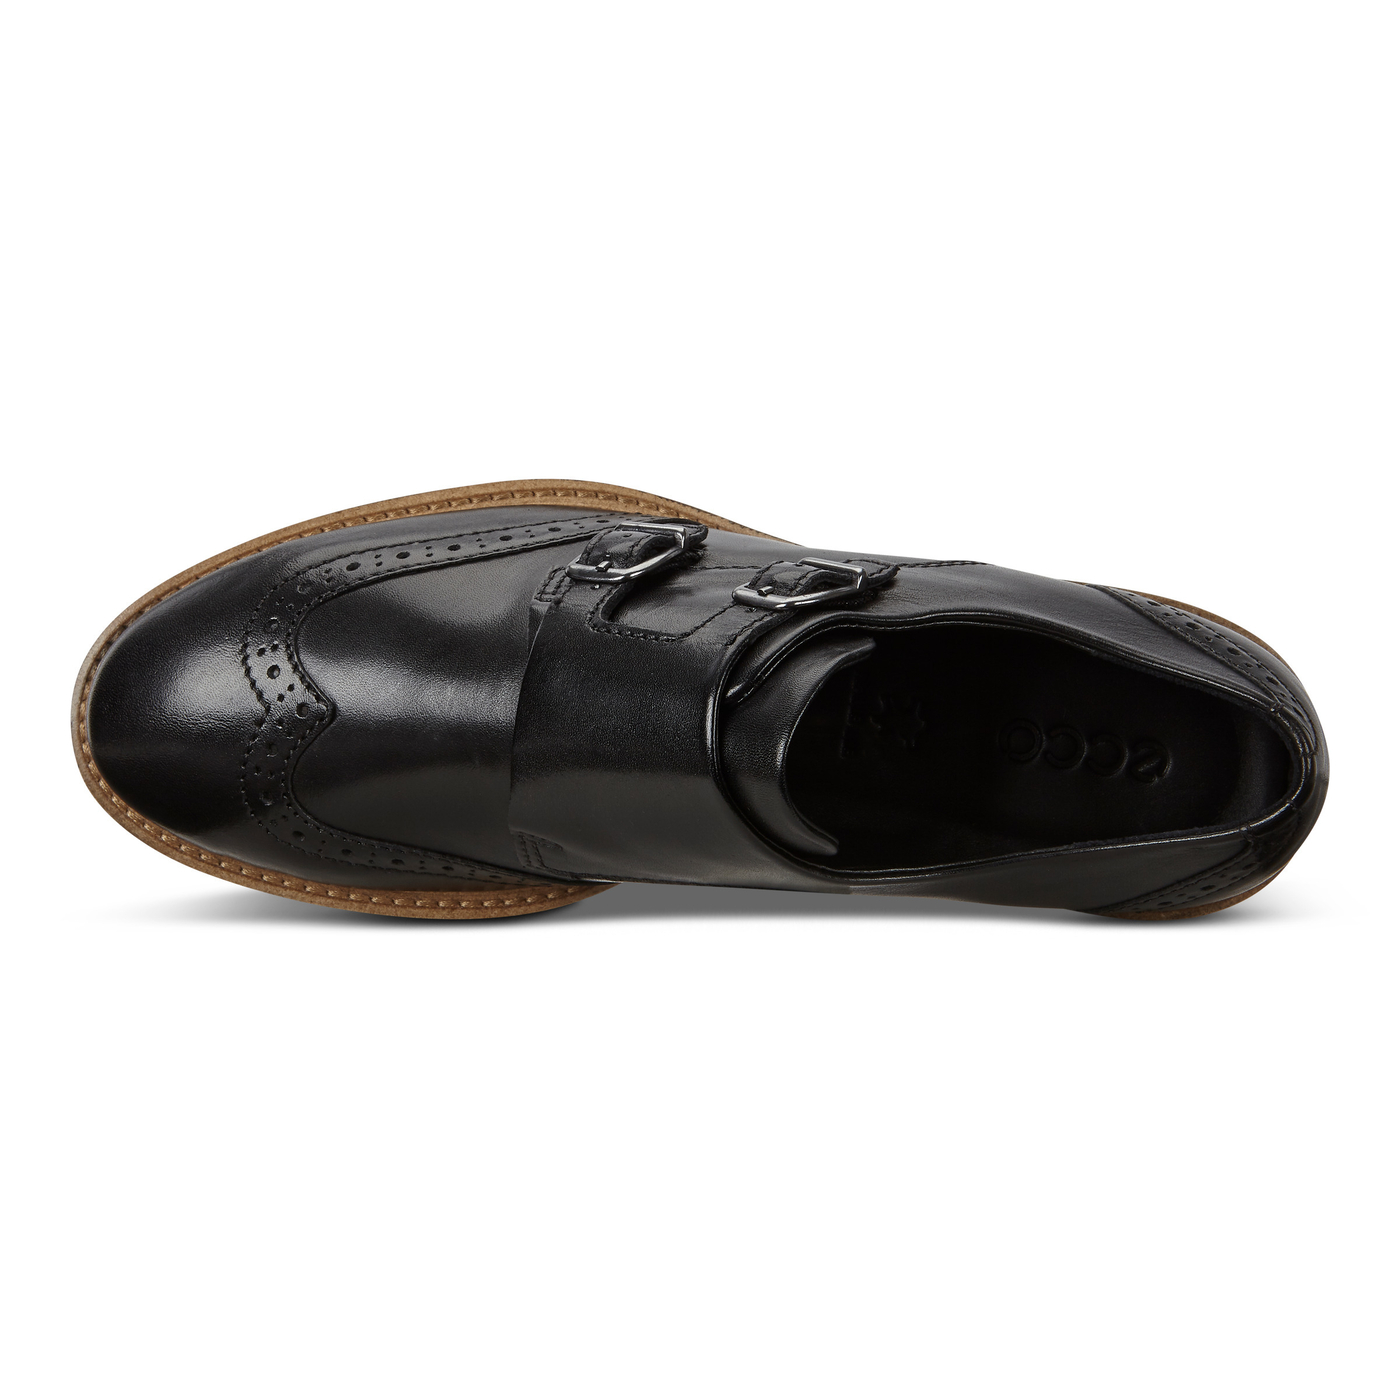 ECCO Sartorelle 25 Tailored Monk Strap